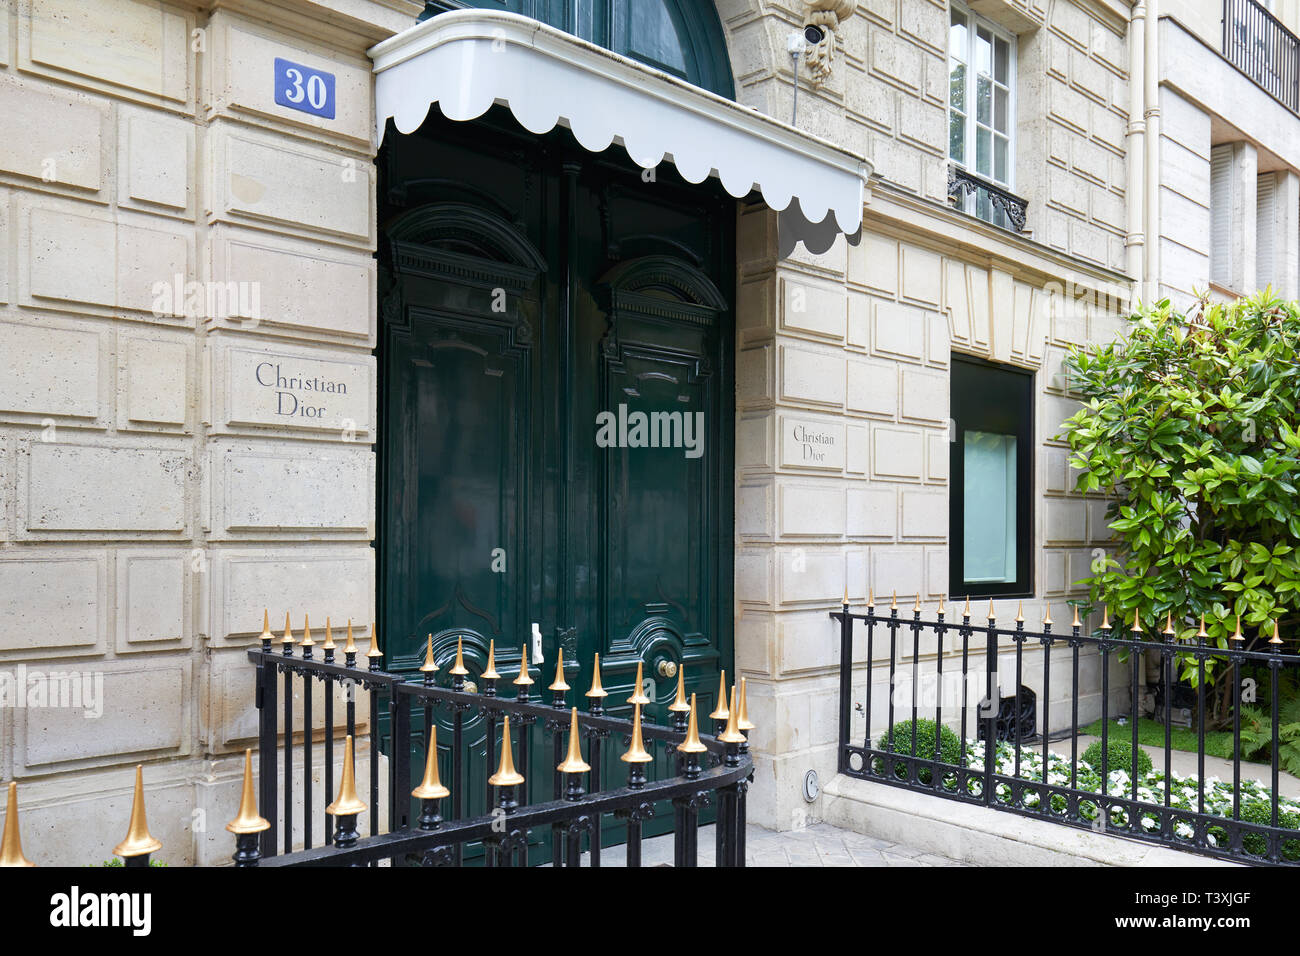 Maison Christian Dior Montauroux the christian dior building stock photos & the christian